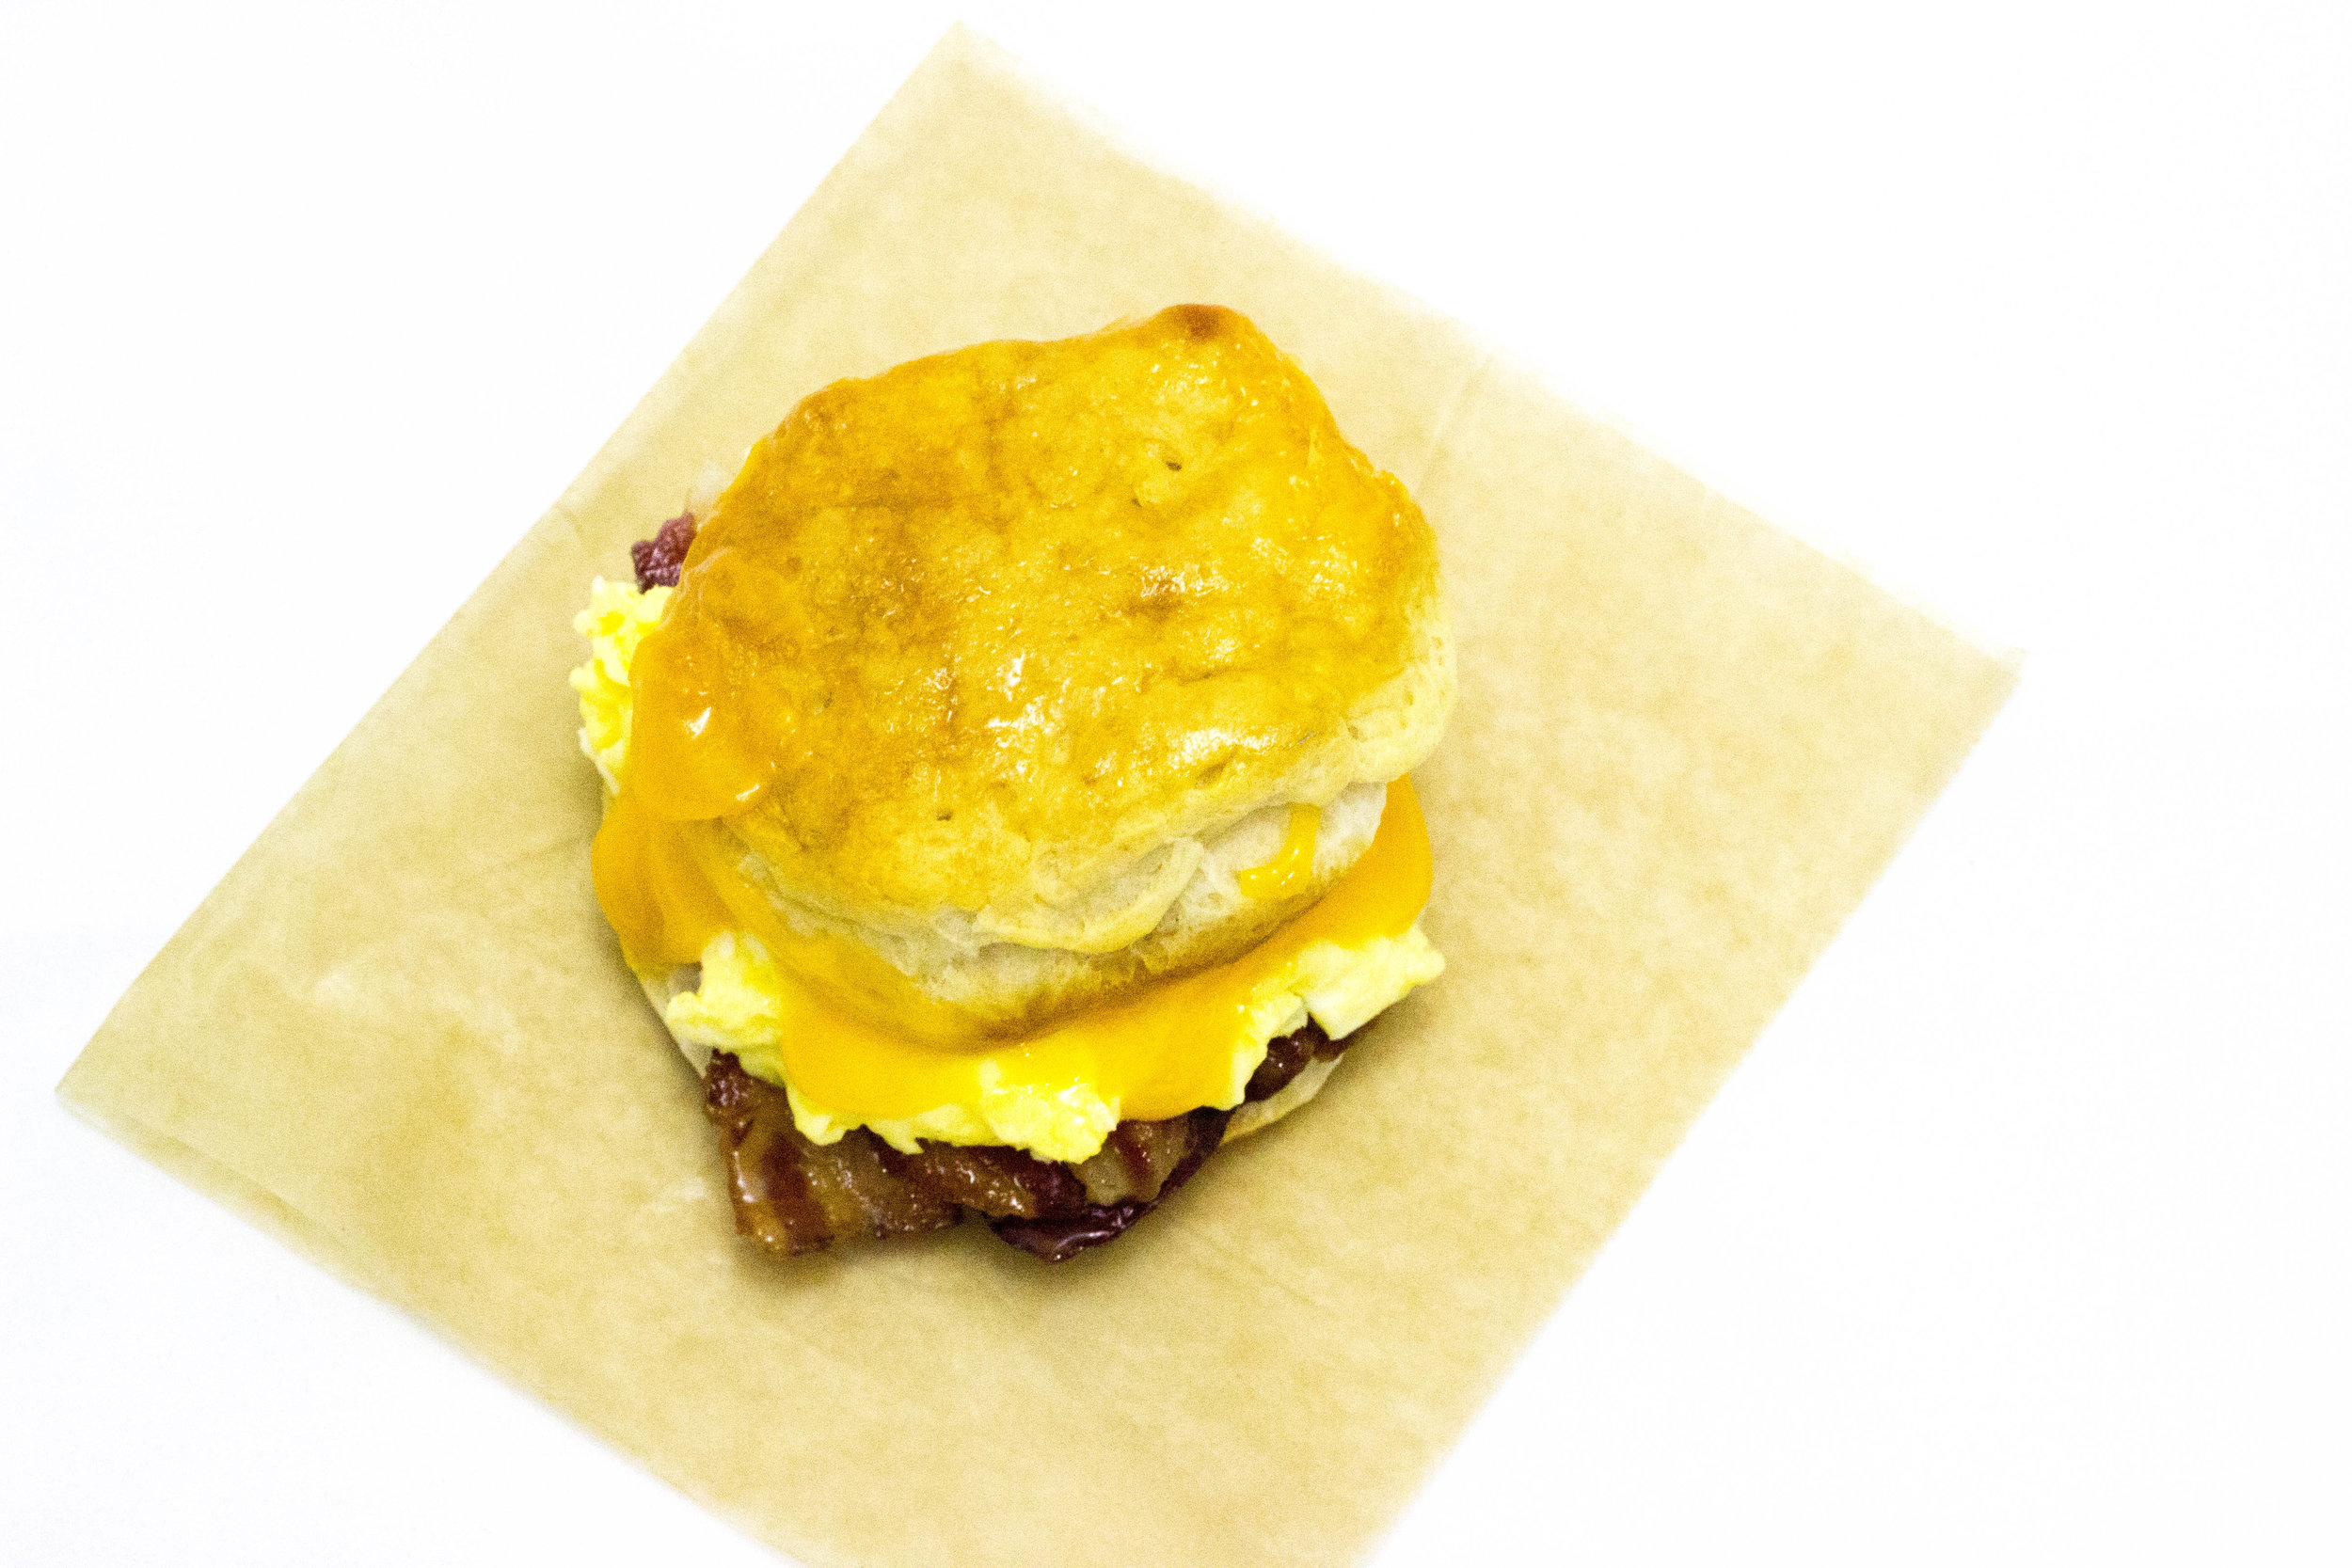 biscuit breakfast sandwich : bacon, egg, and cheese, with jalapeño aioli